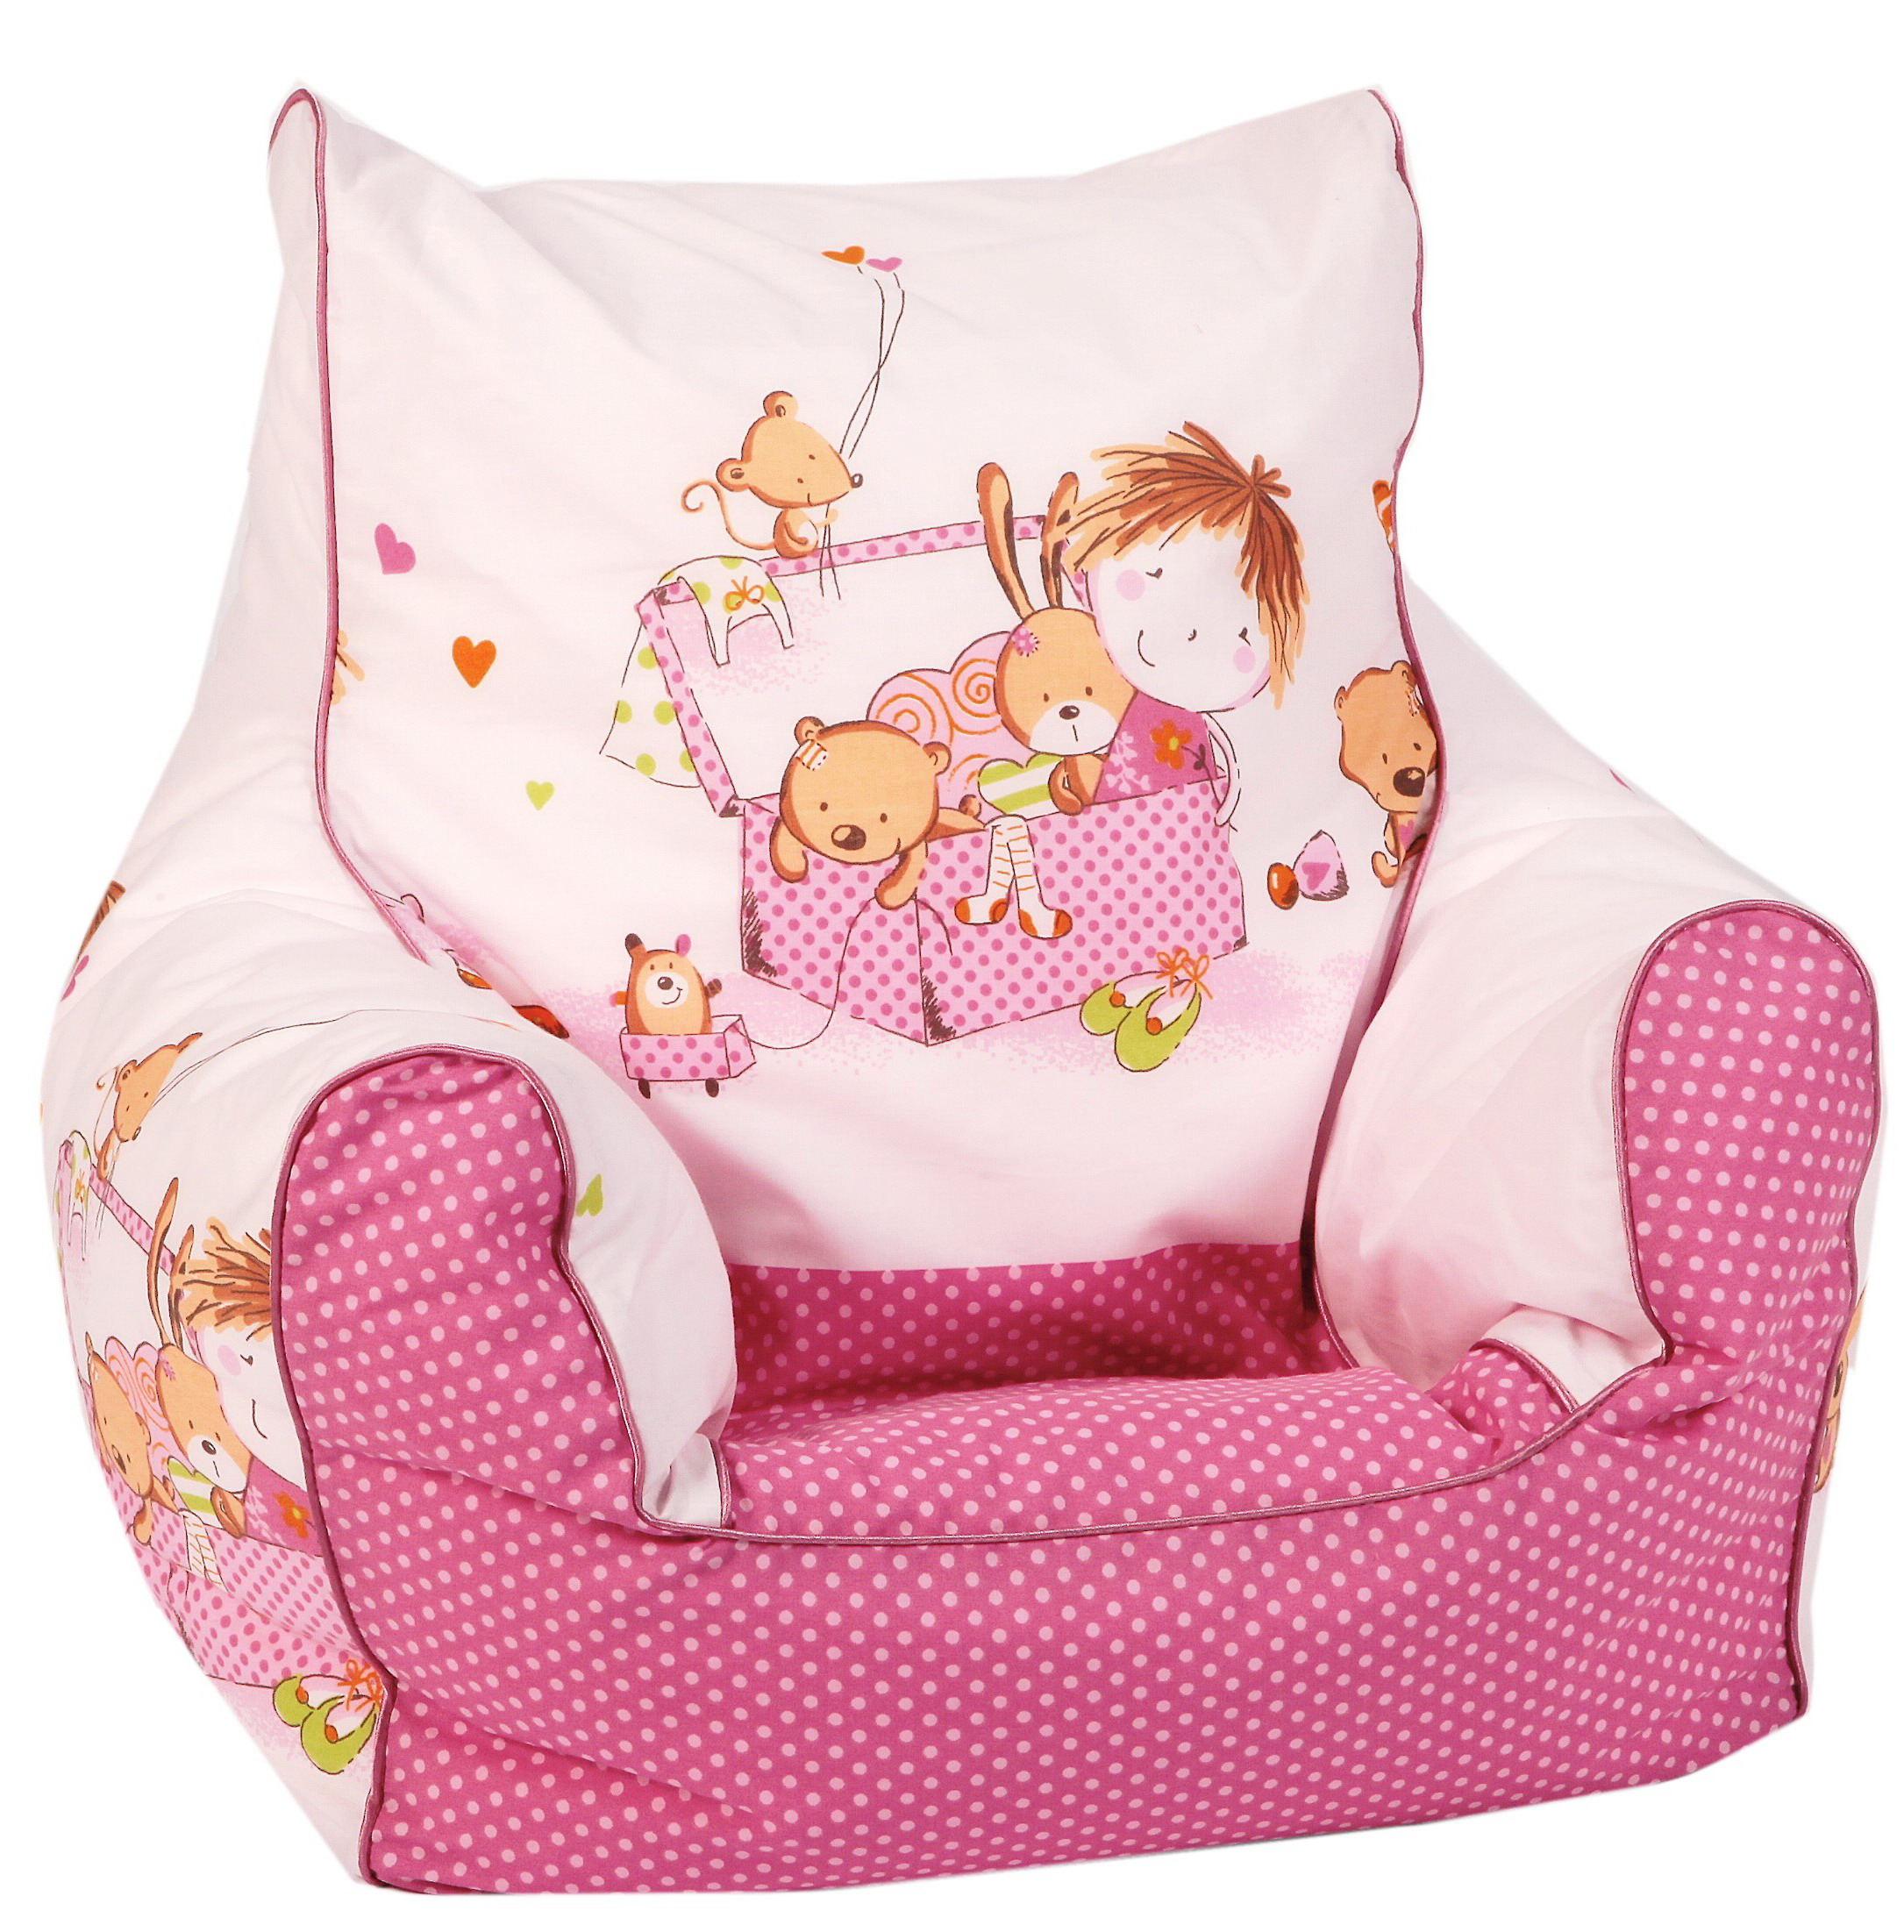 knorr baby gmbh kinder sitzsack spielzimmer pink online kaufen. Black Bedroom Furniture Sets. Home Design Ideas